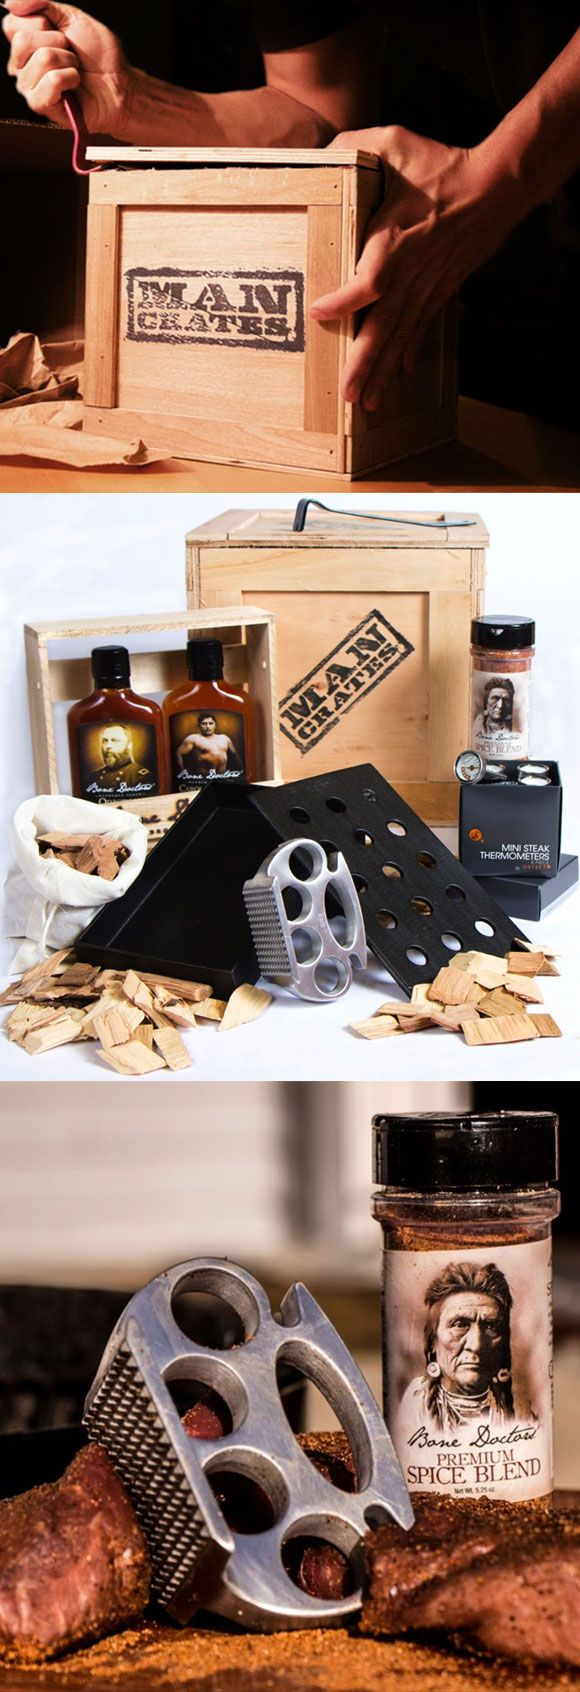 Yes it's snowing, which is why you should be thinking about summer! Get your Valentine a Grill Master Crate and help him take his grilling game to the next level. #ManCrates